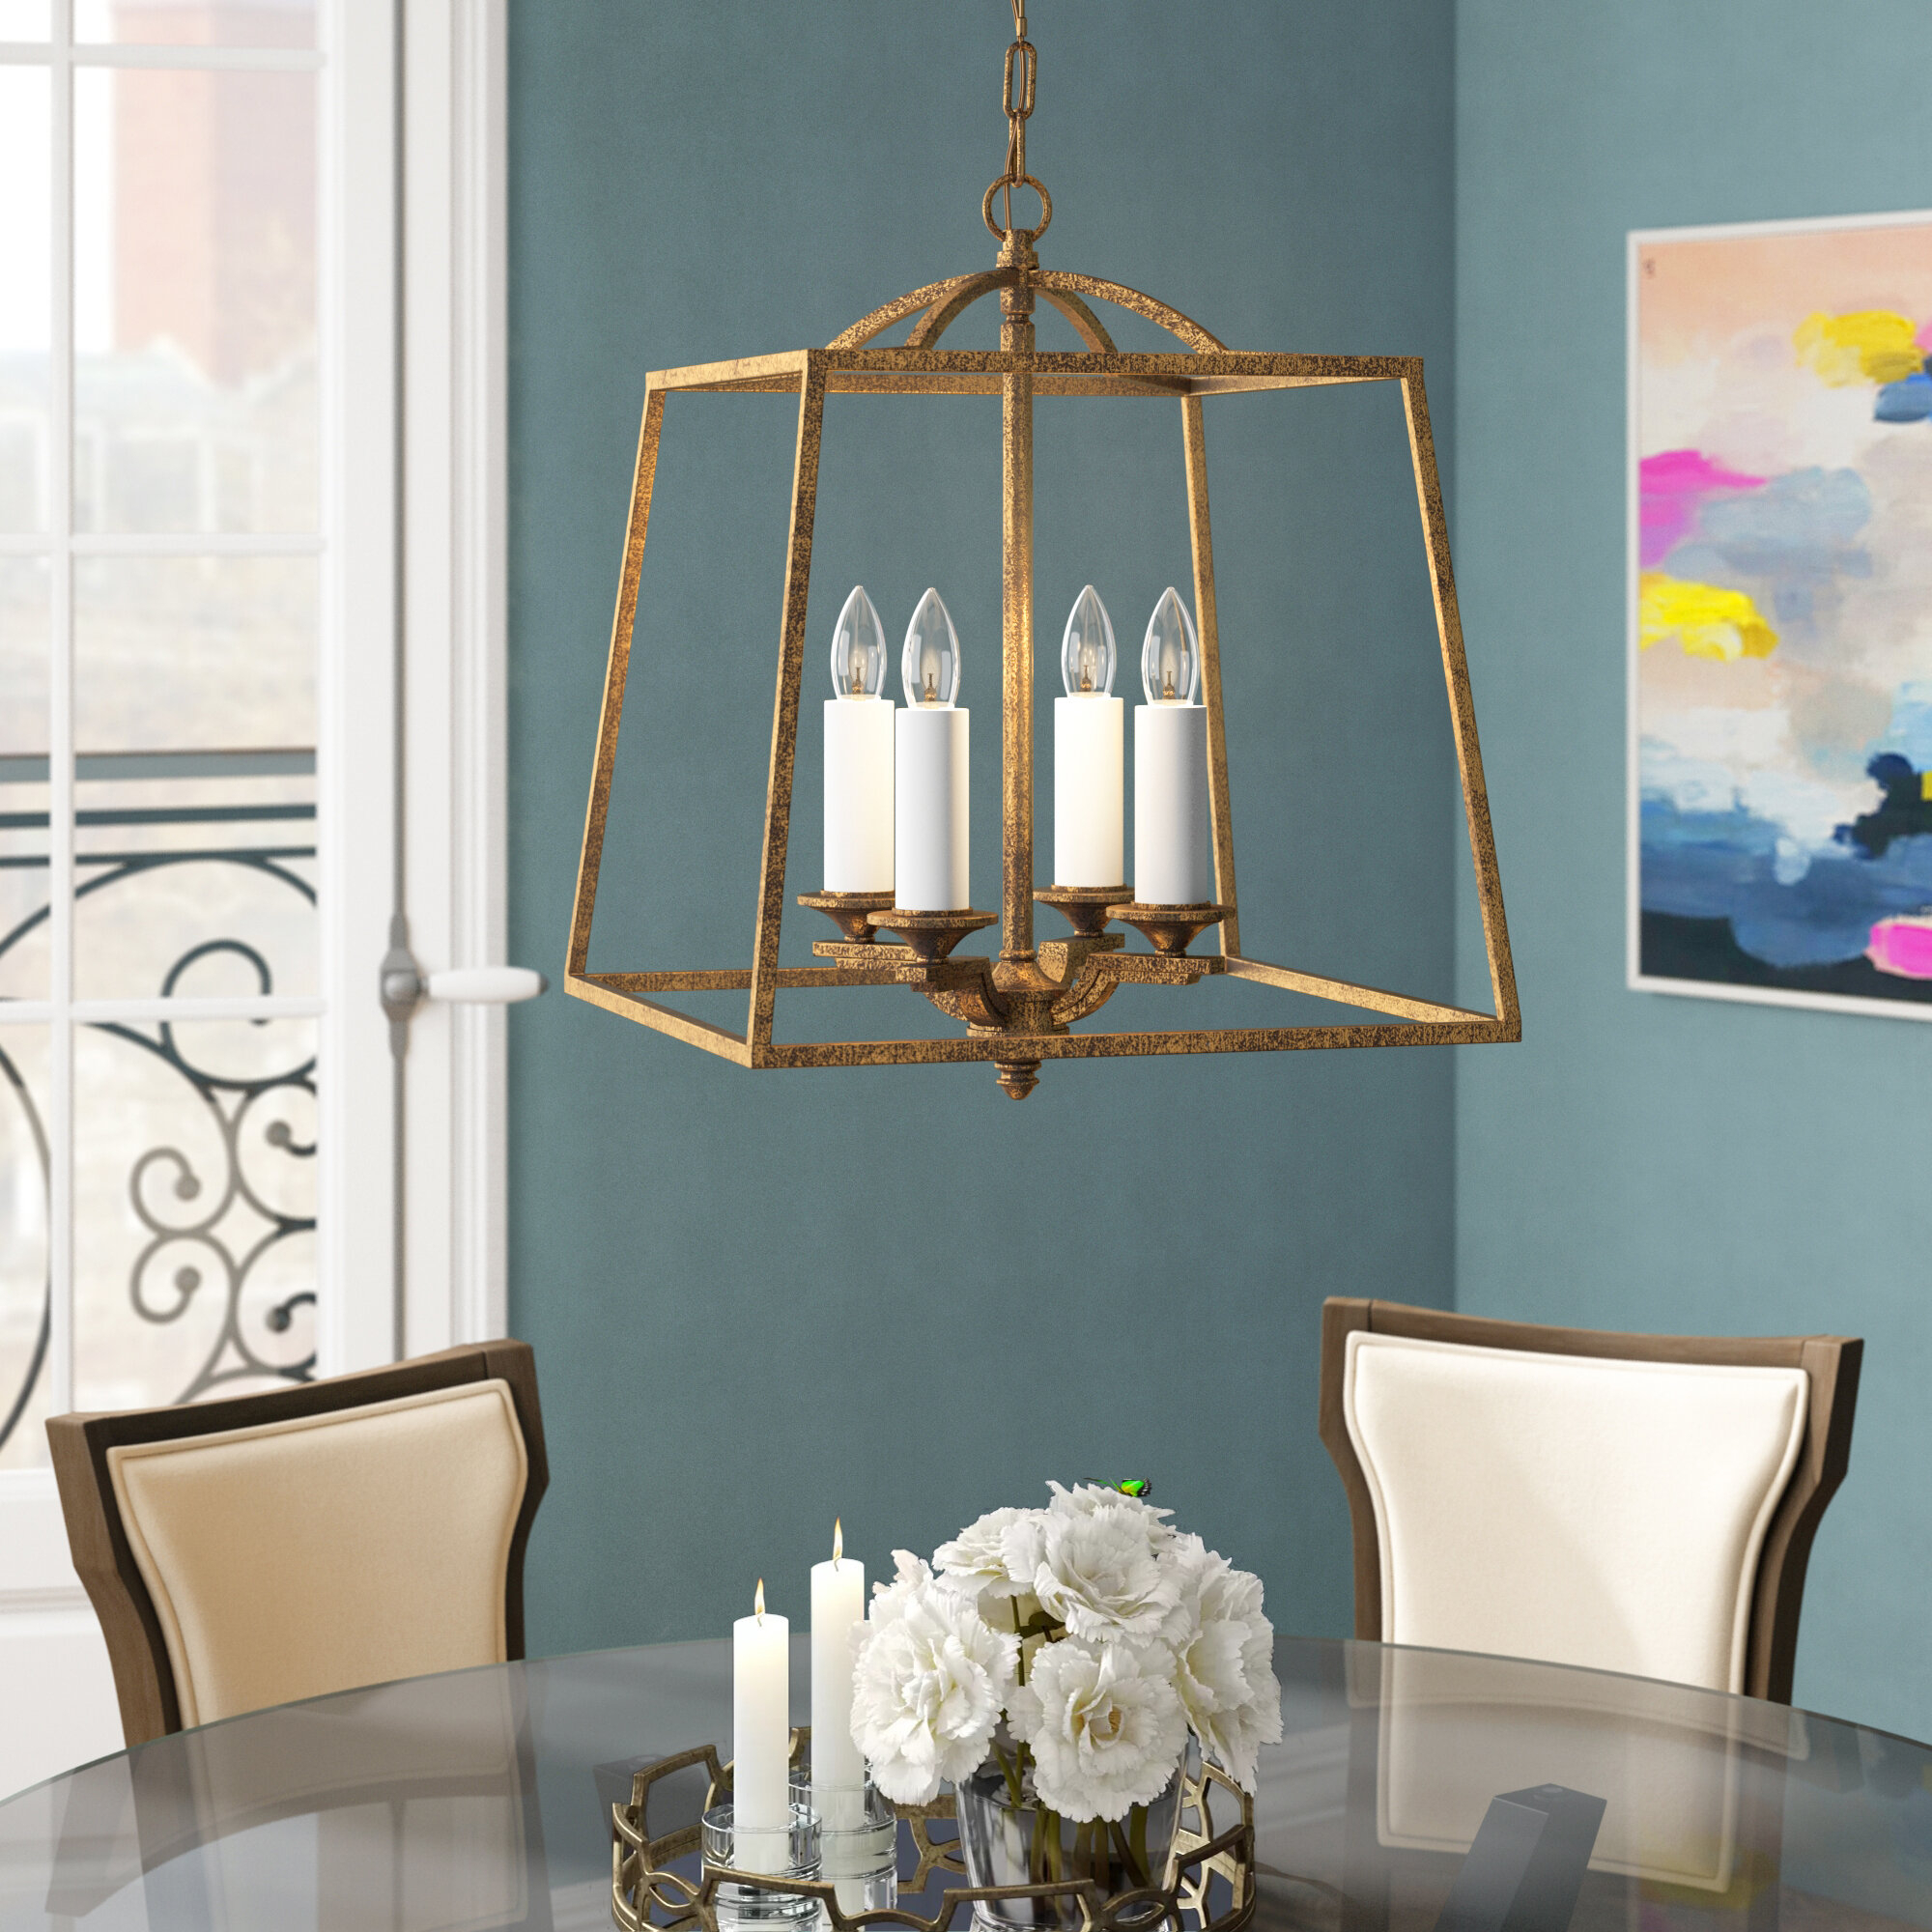 Senter 4-Light Lantern Geometric Pendant with regard to Isoline 2-Light Lantern Geometric Pendants (Image 25 of 30)